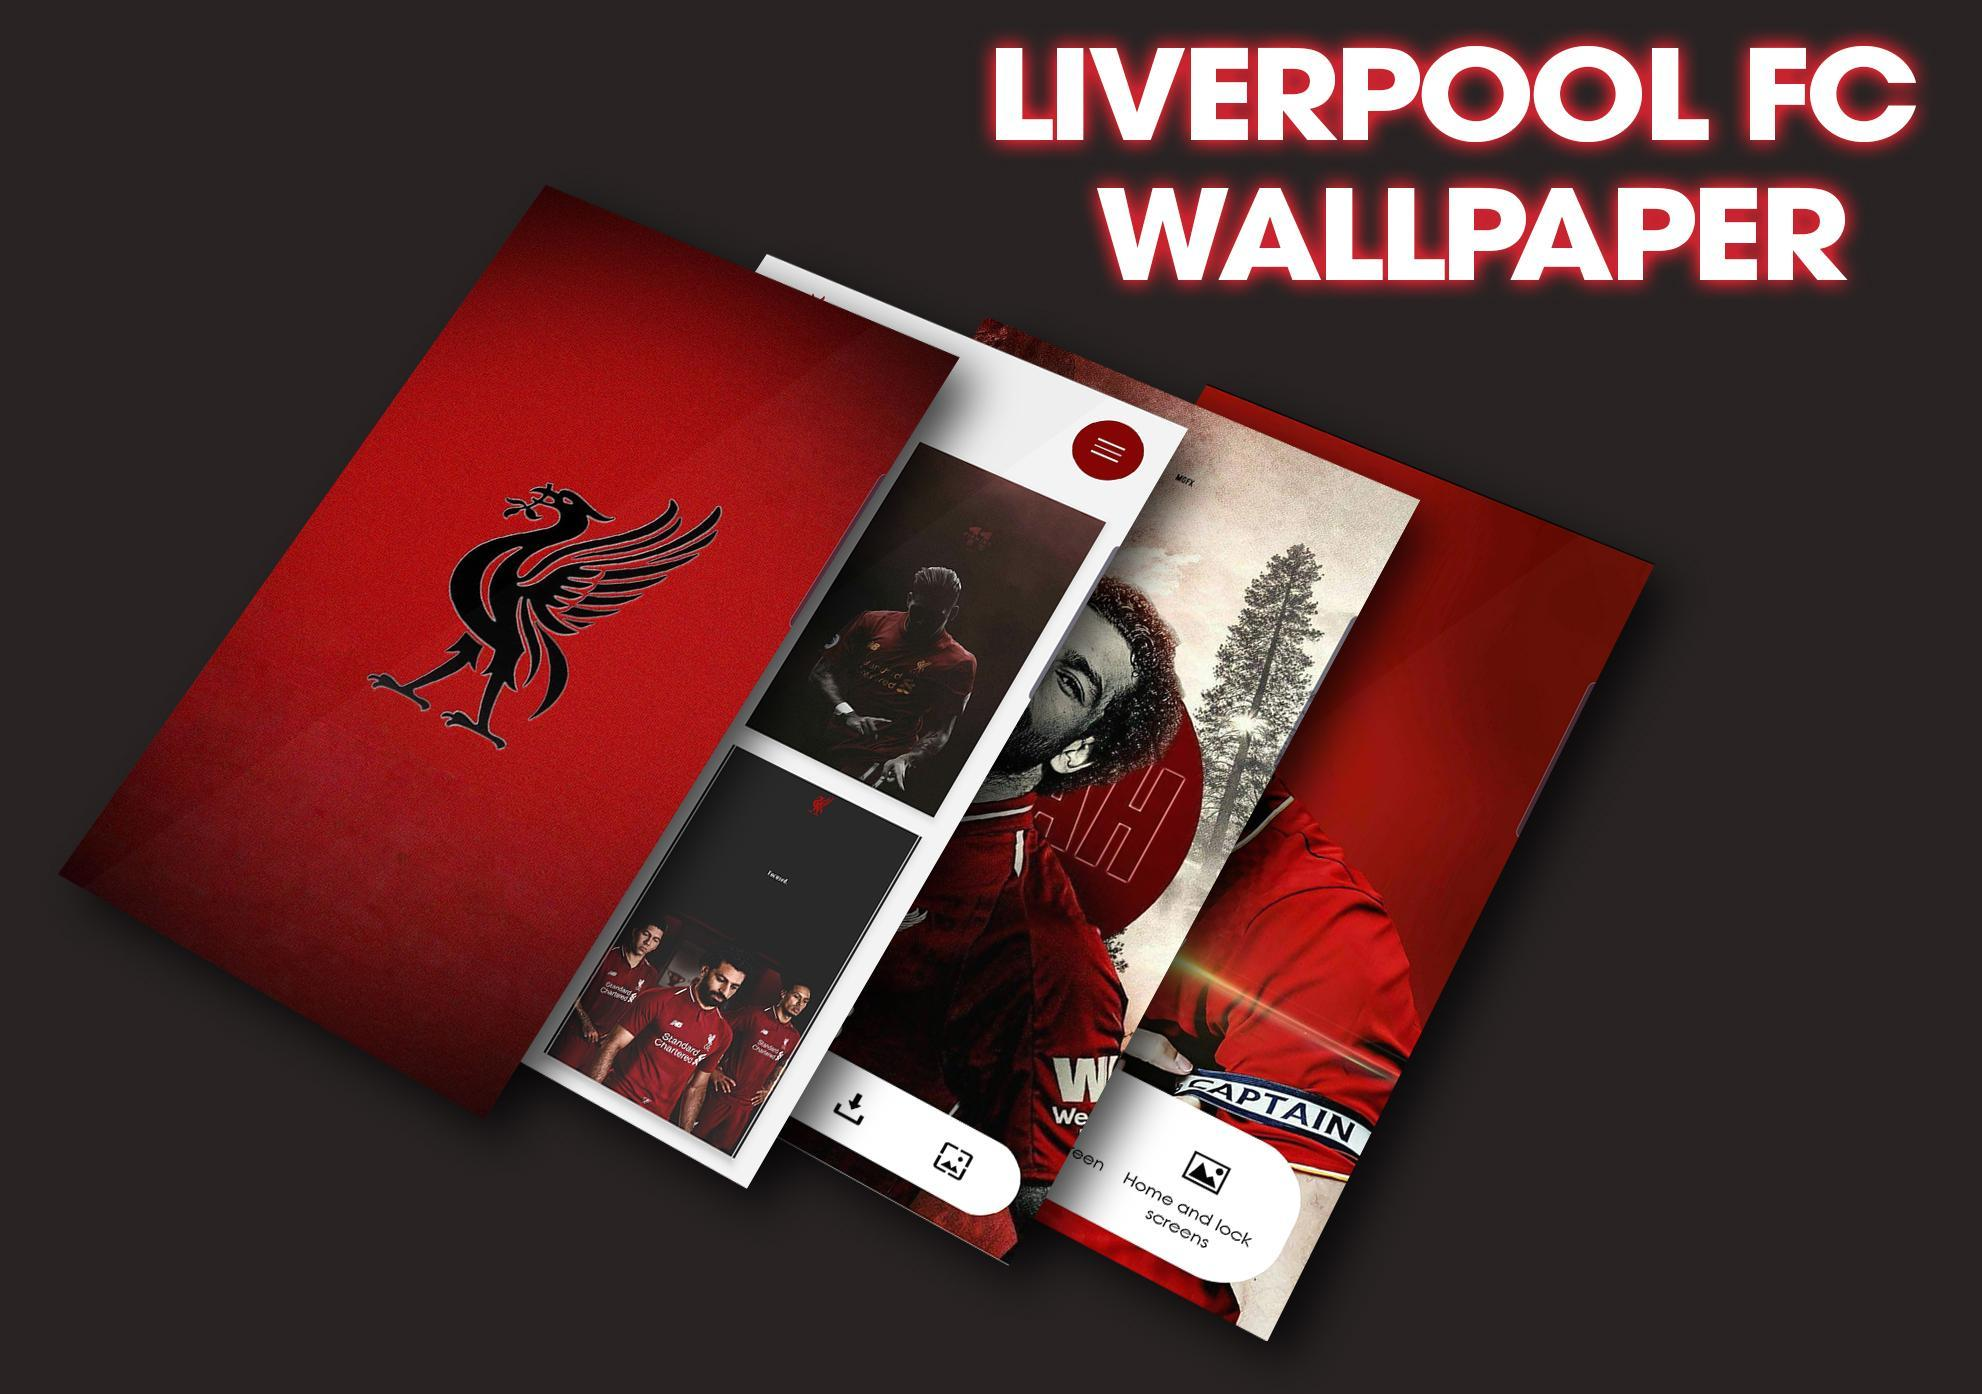 Lfc The Kop Wallpaper Hd 2020 For Android Apk Download